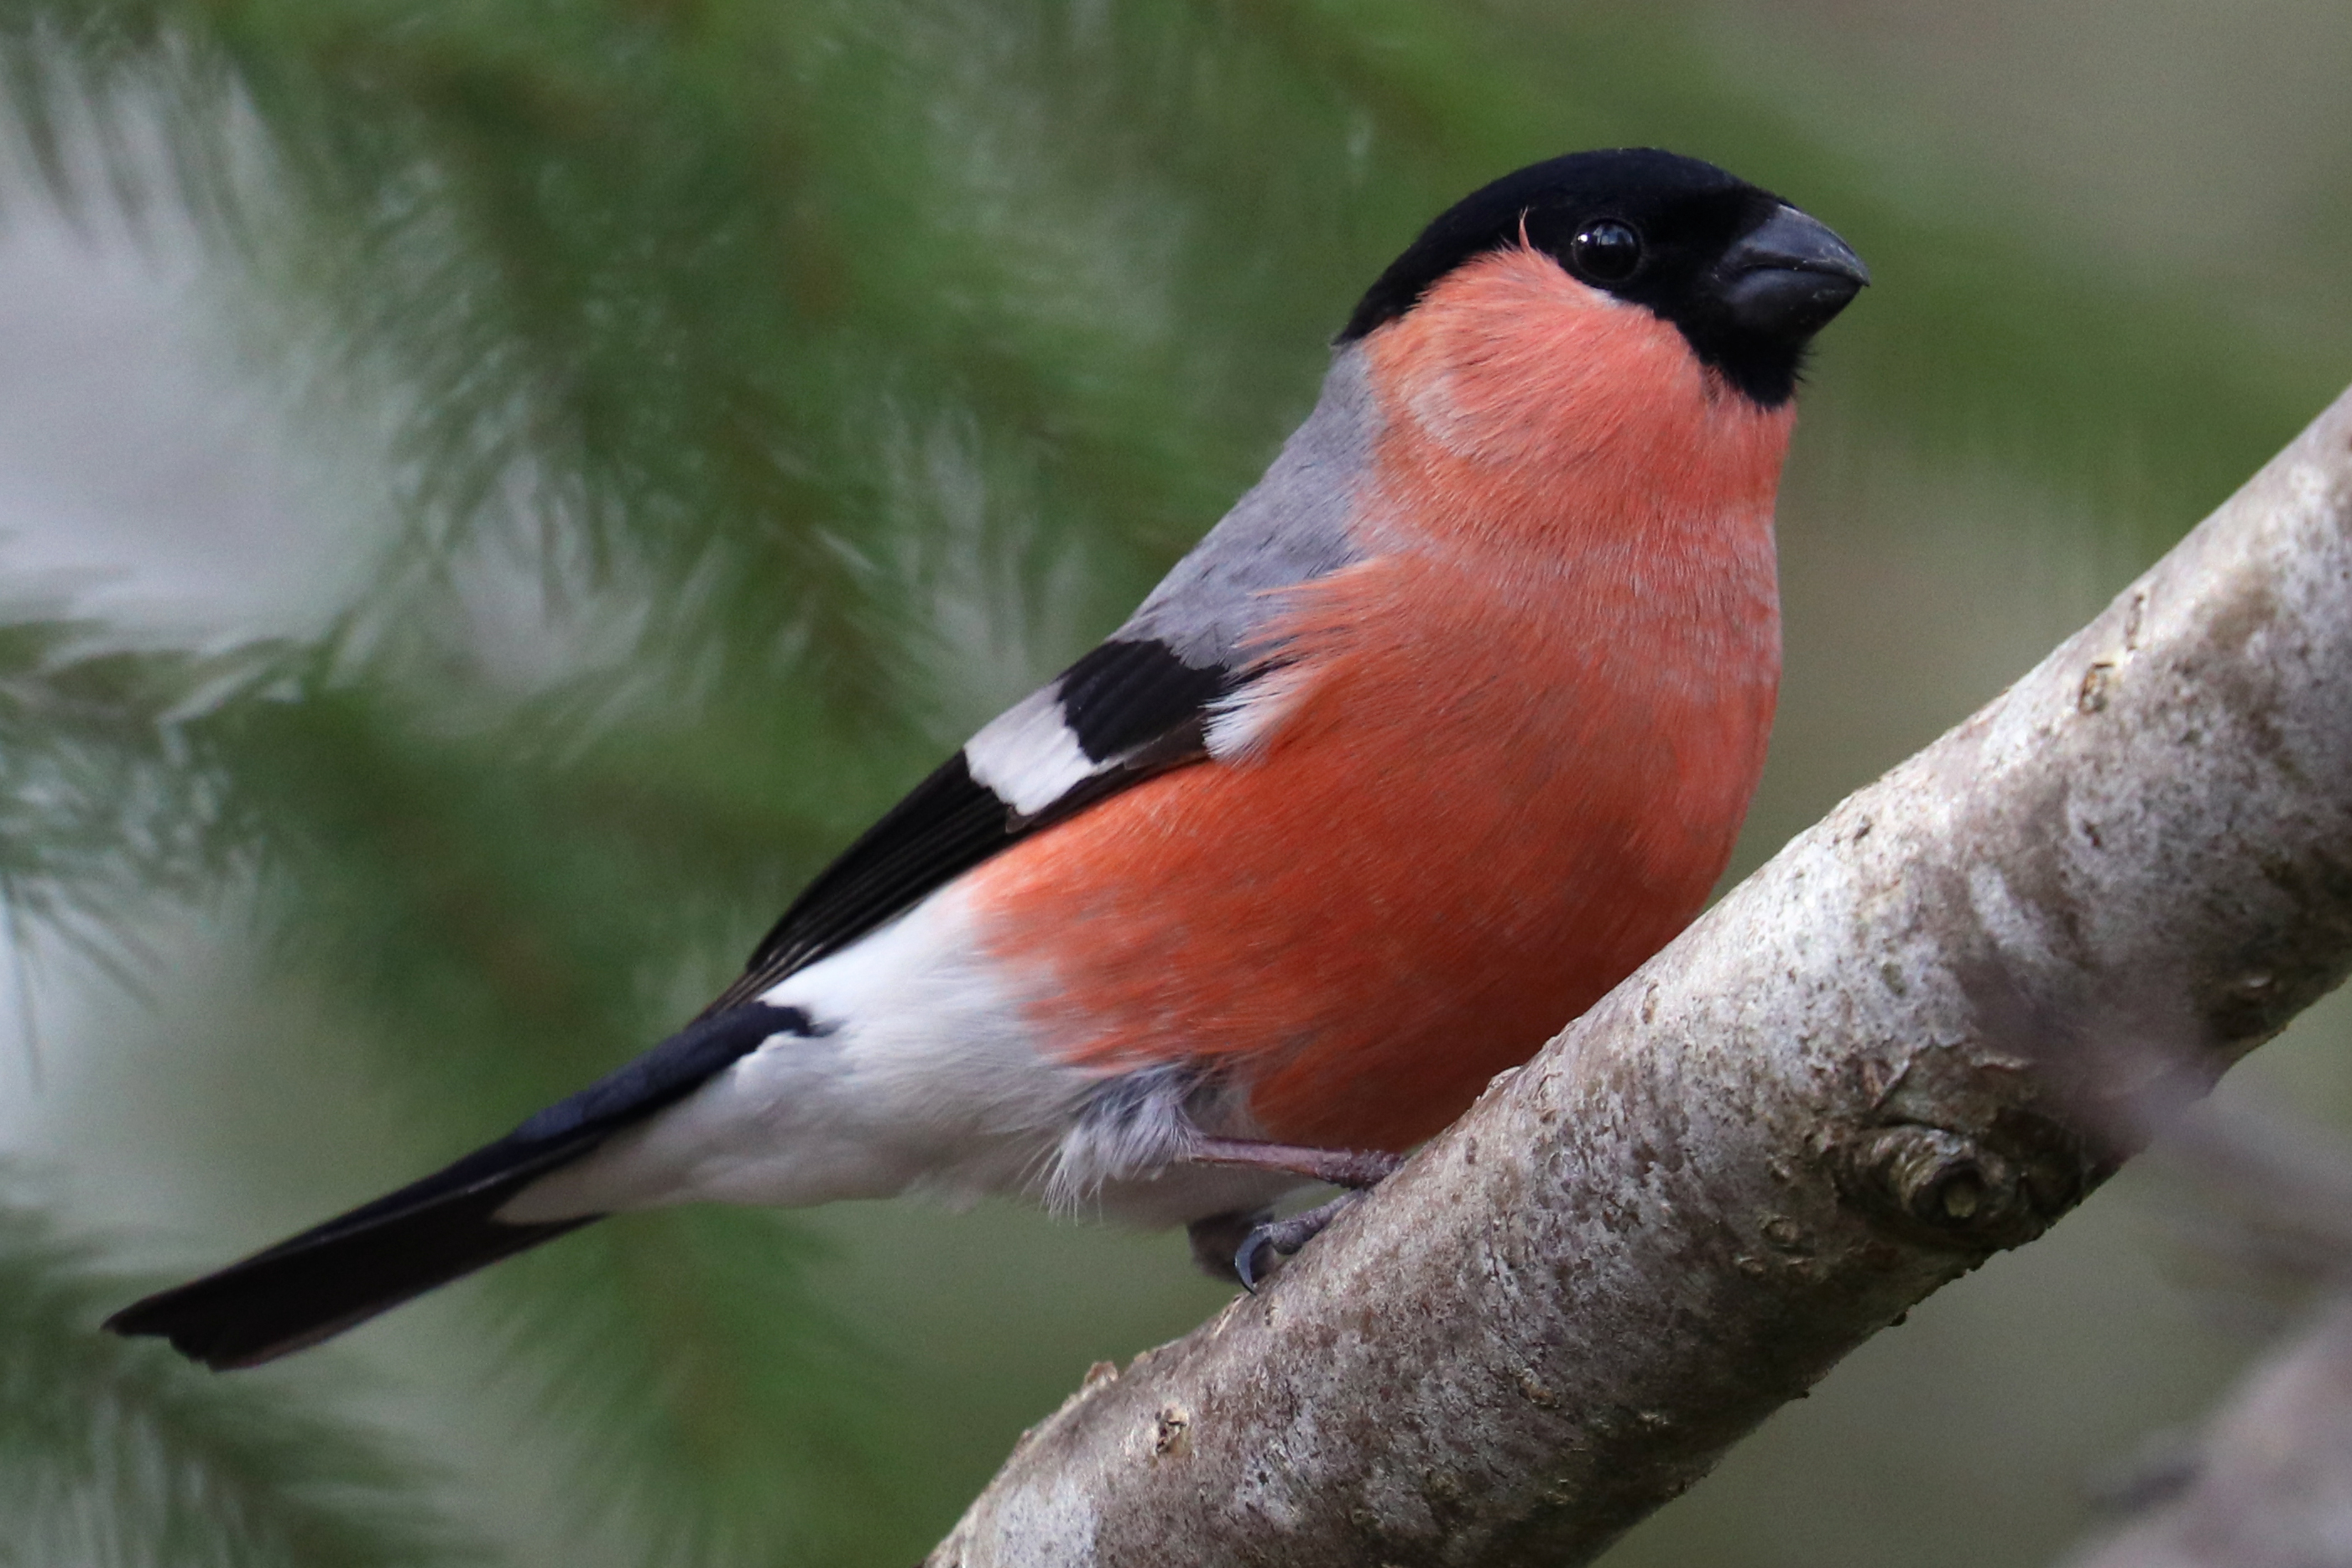 Eurasian bullfinch (2 pictures)